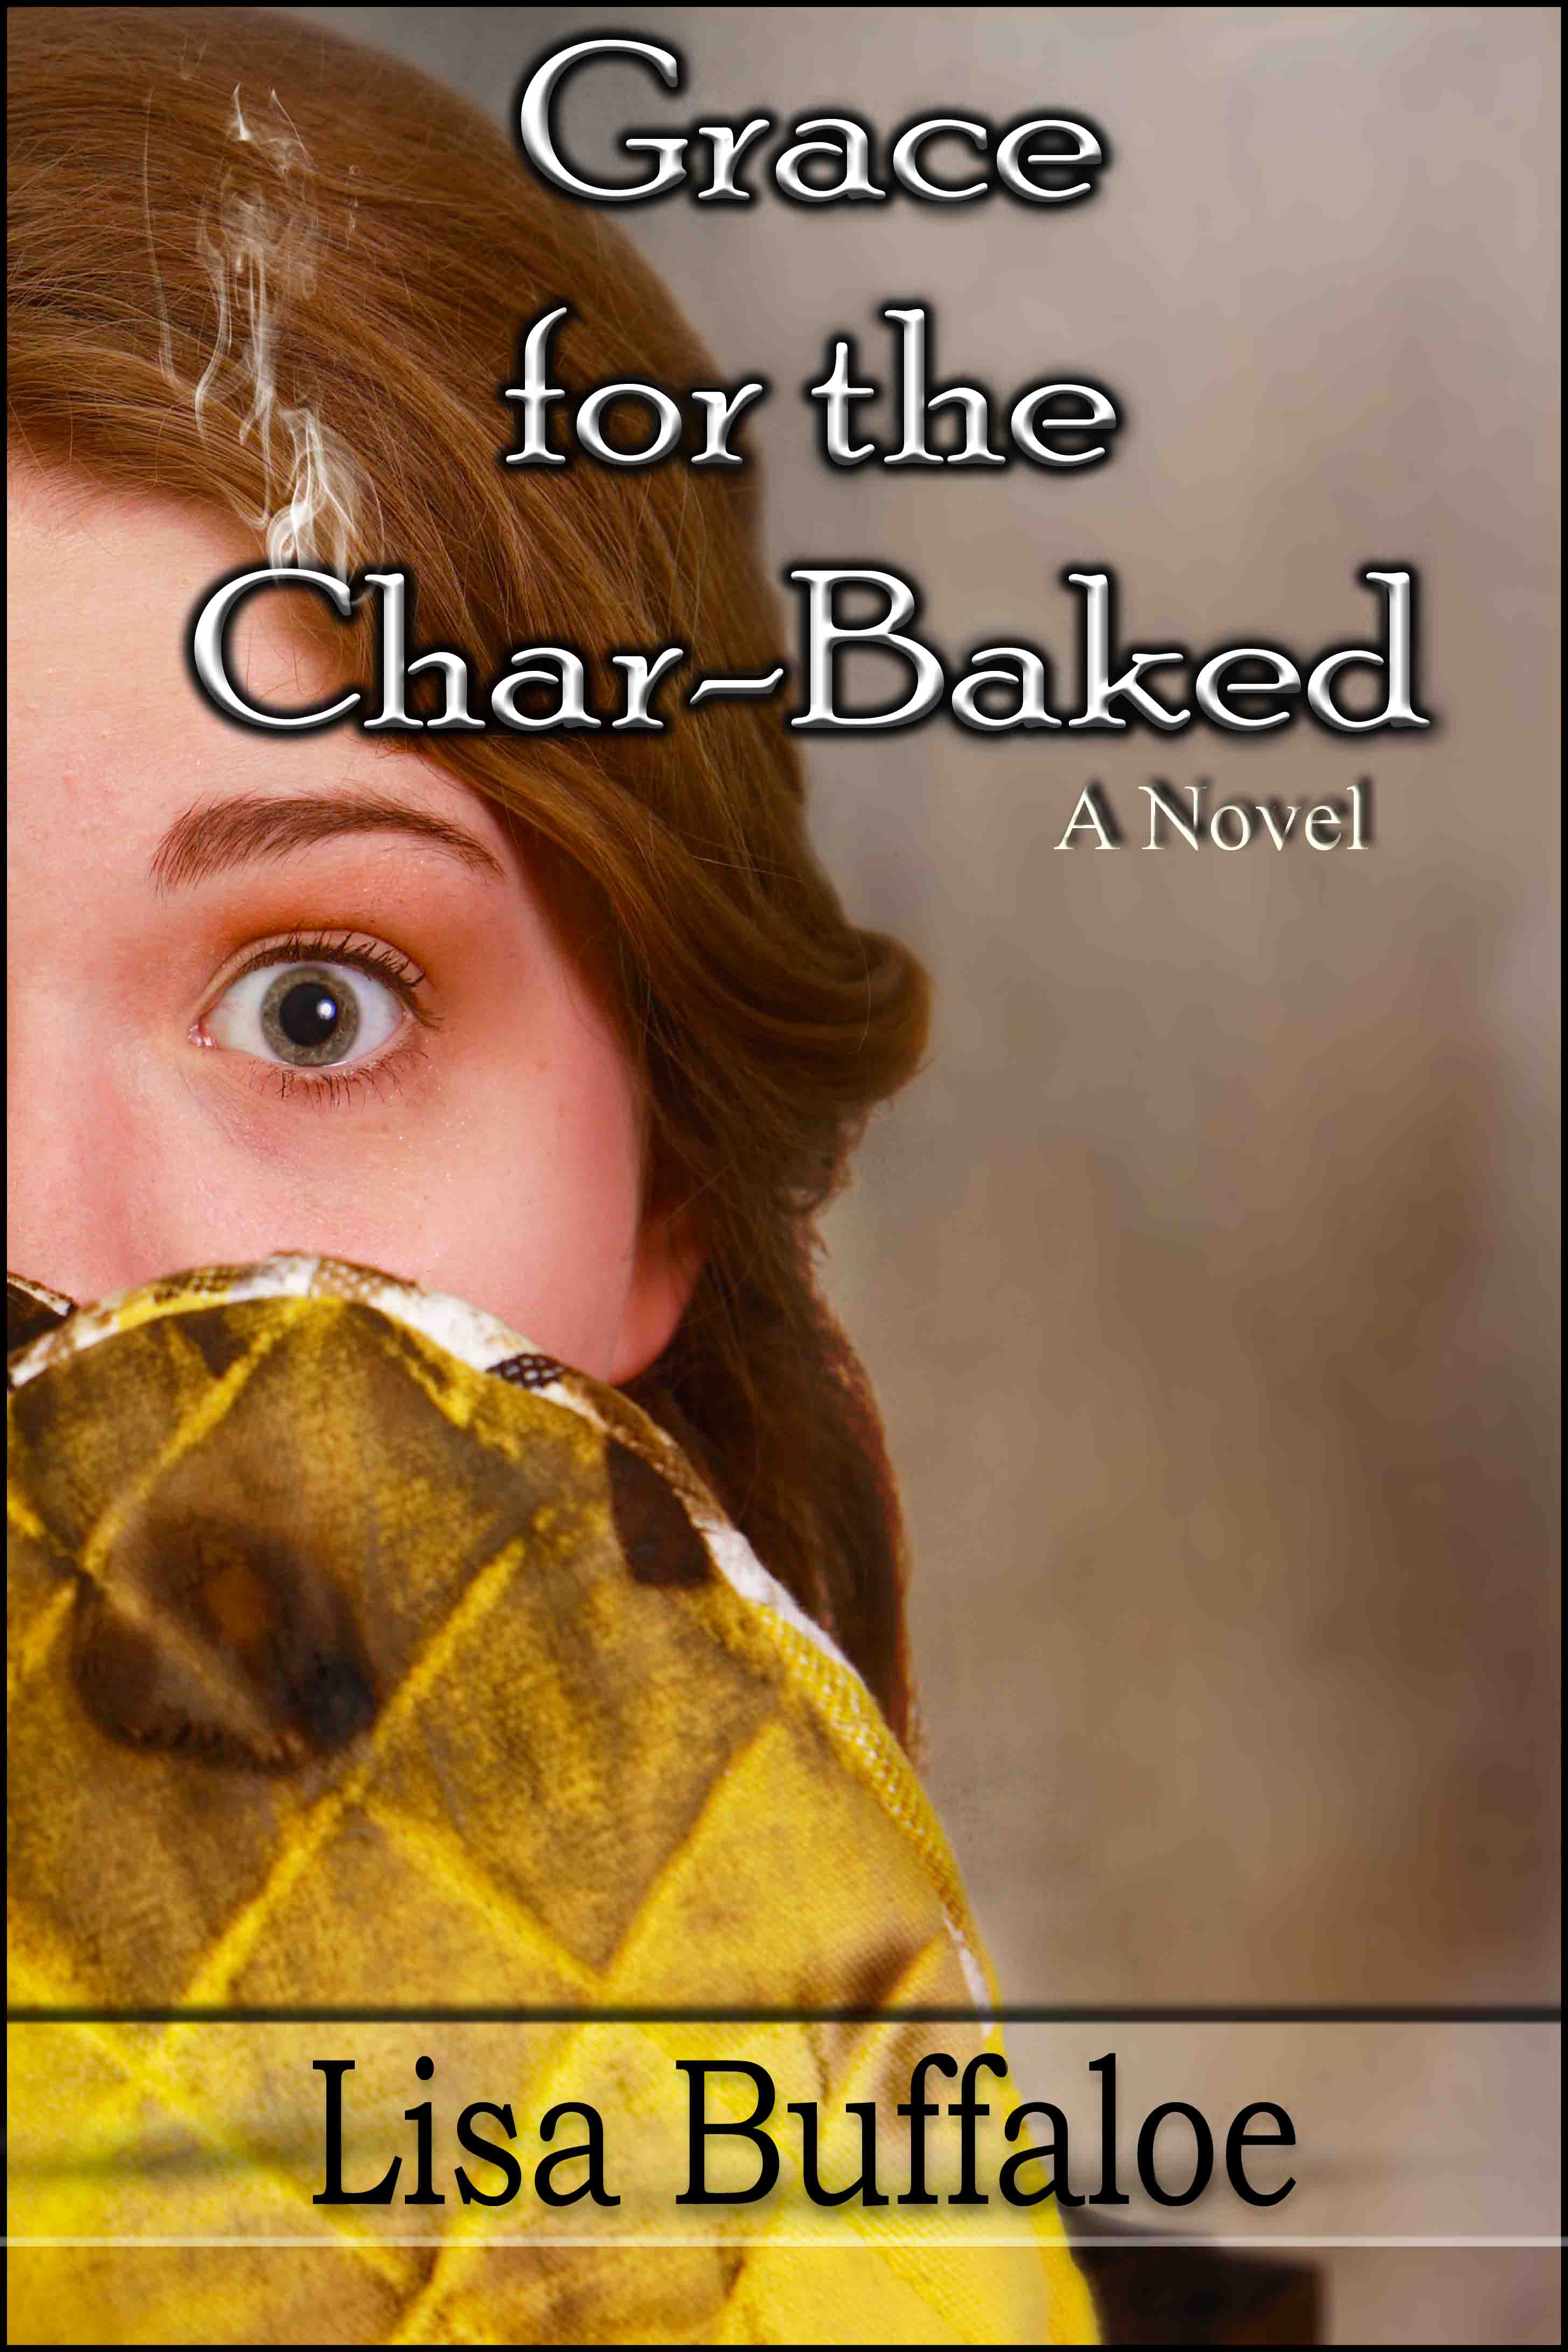 Grace for the Char-Baked by Lisa Buffaloe